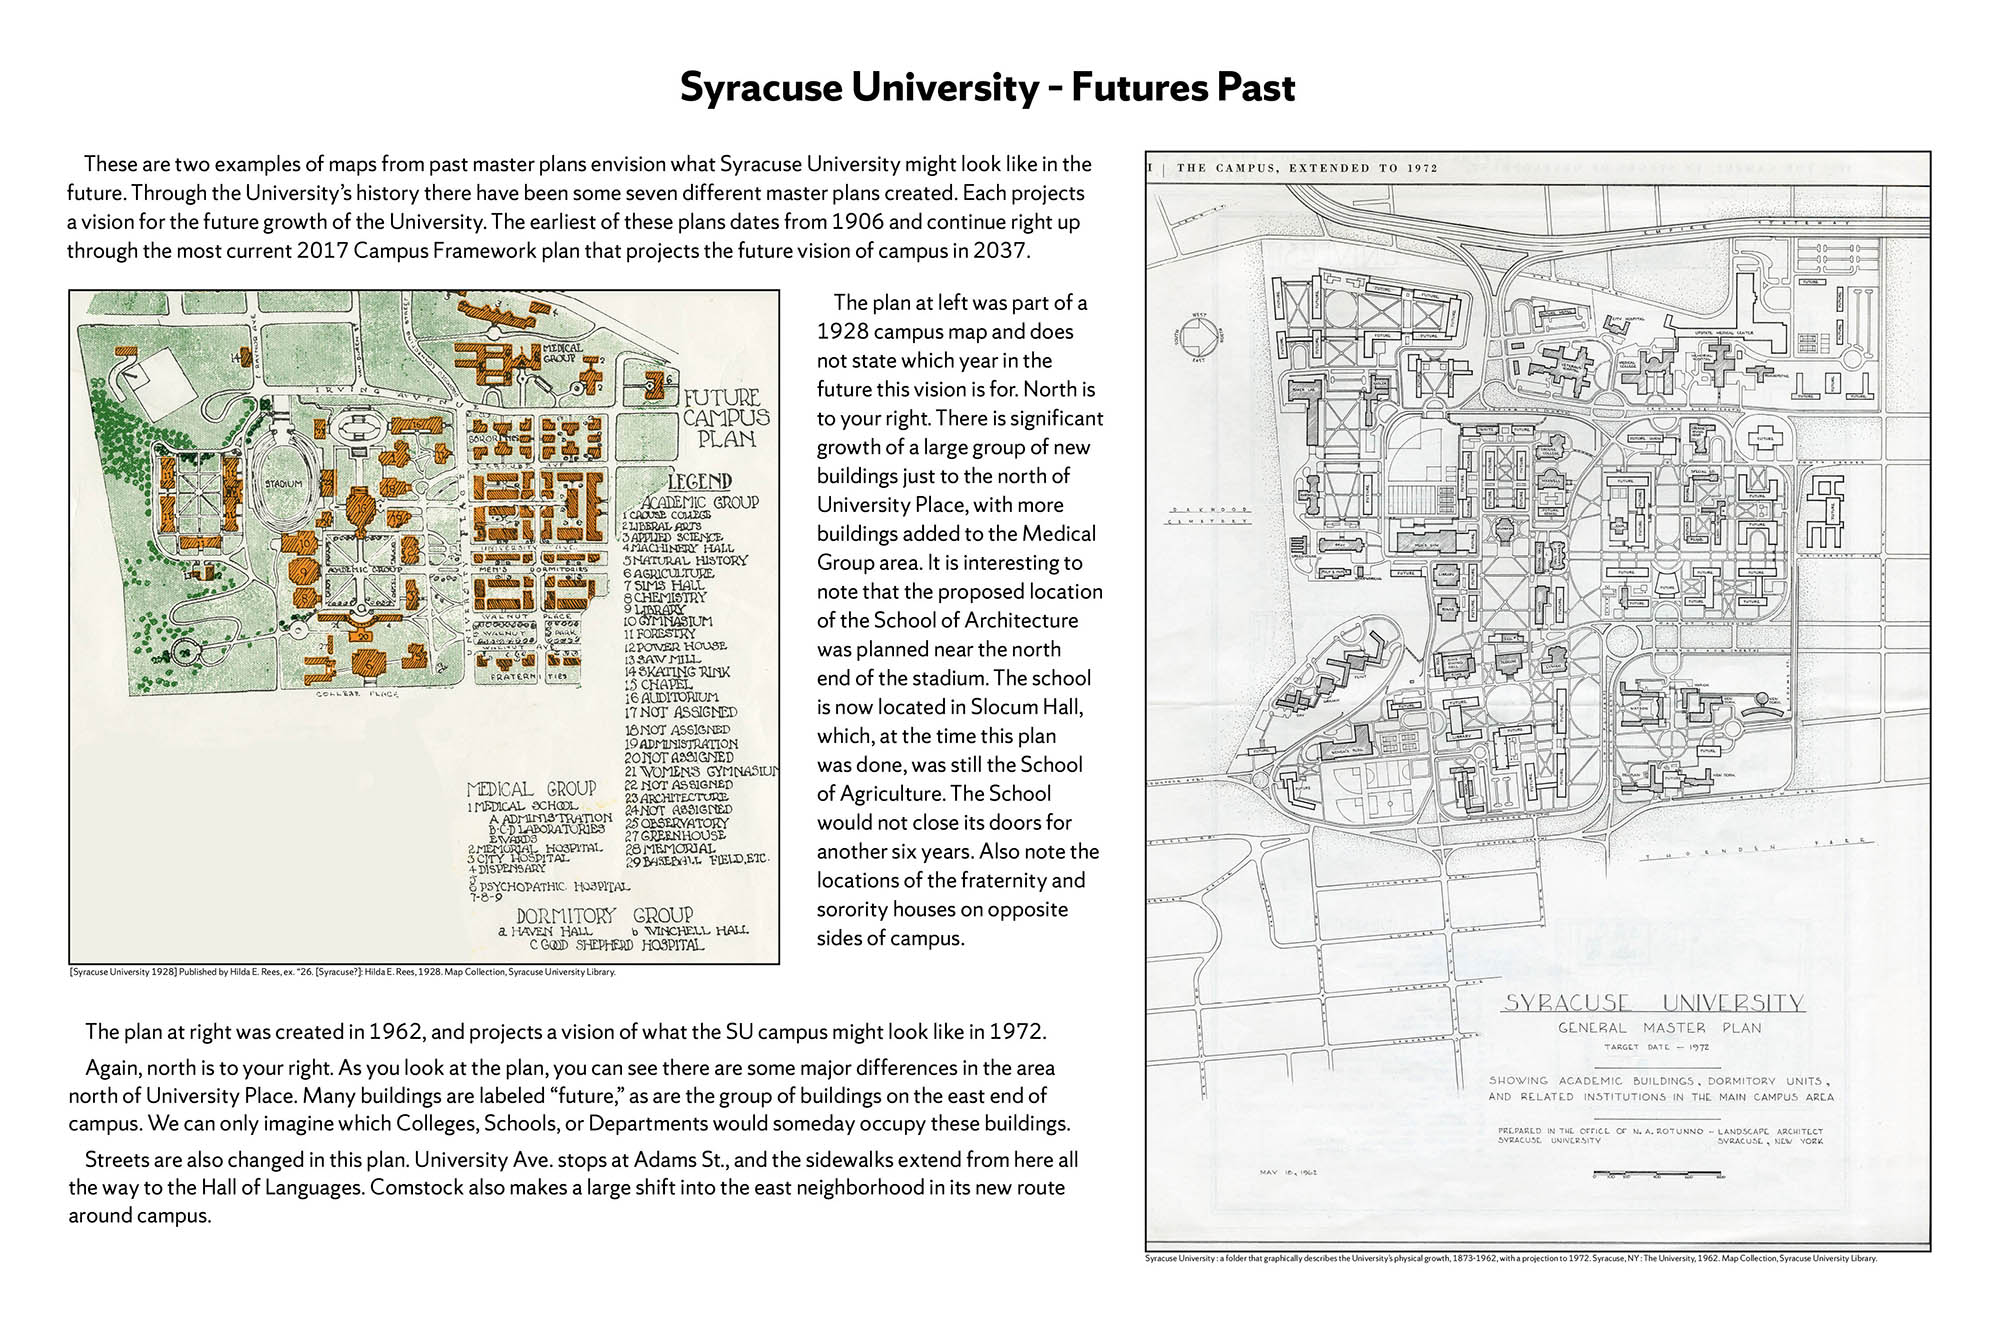 Syracuse University 150 years in maps – Futures Past poster